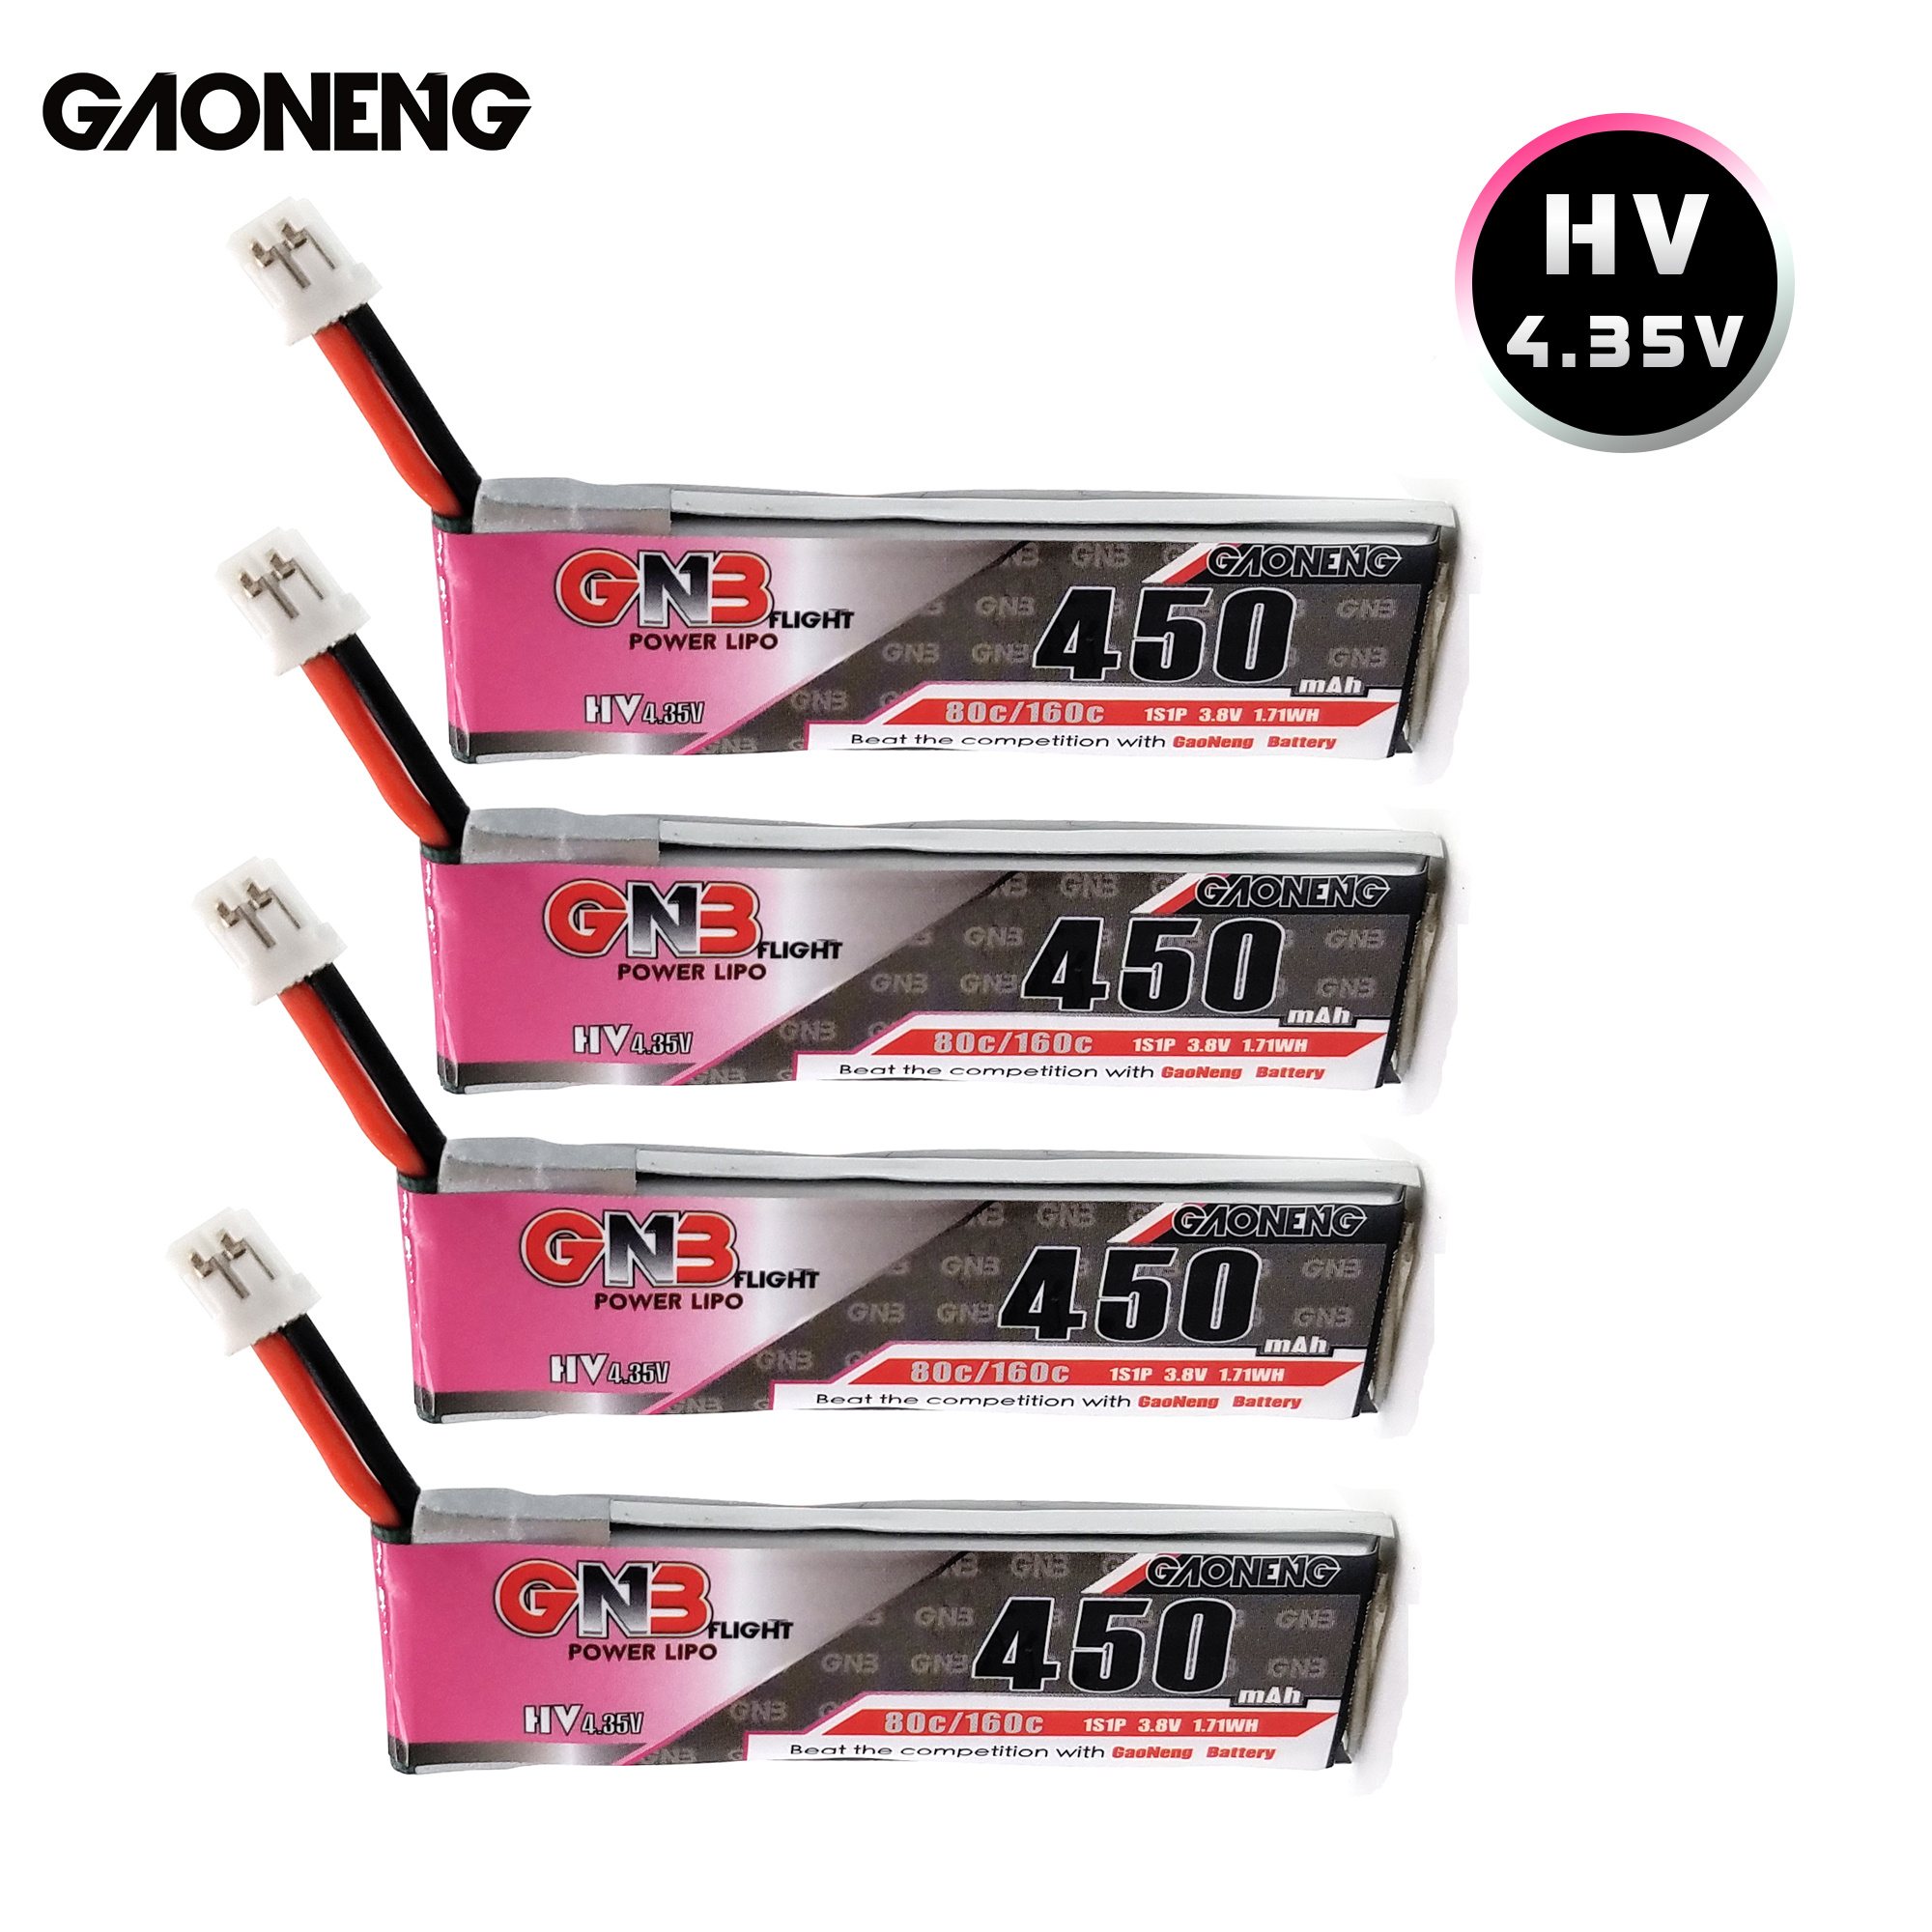 Gaoneng GNB 1S HV 4.35V 450mAh LiPo Battery 80 With PH2.0 Plug For RC FPV Small Drone TINY7